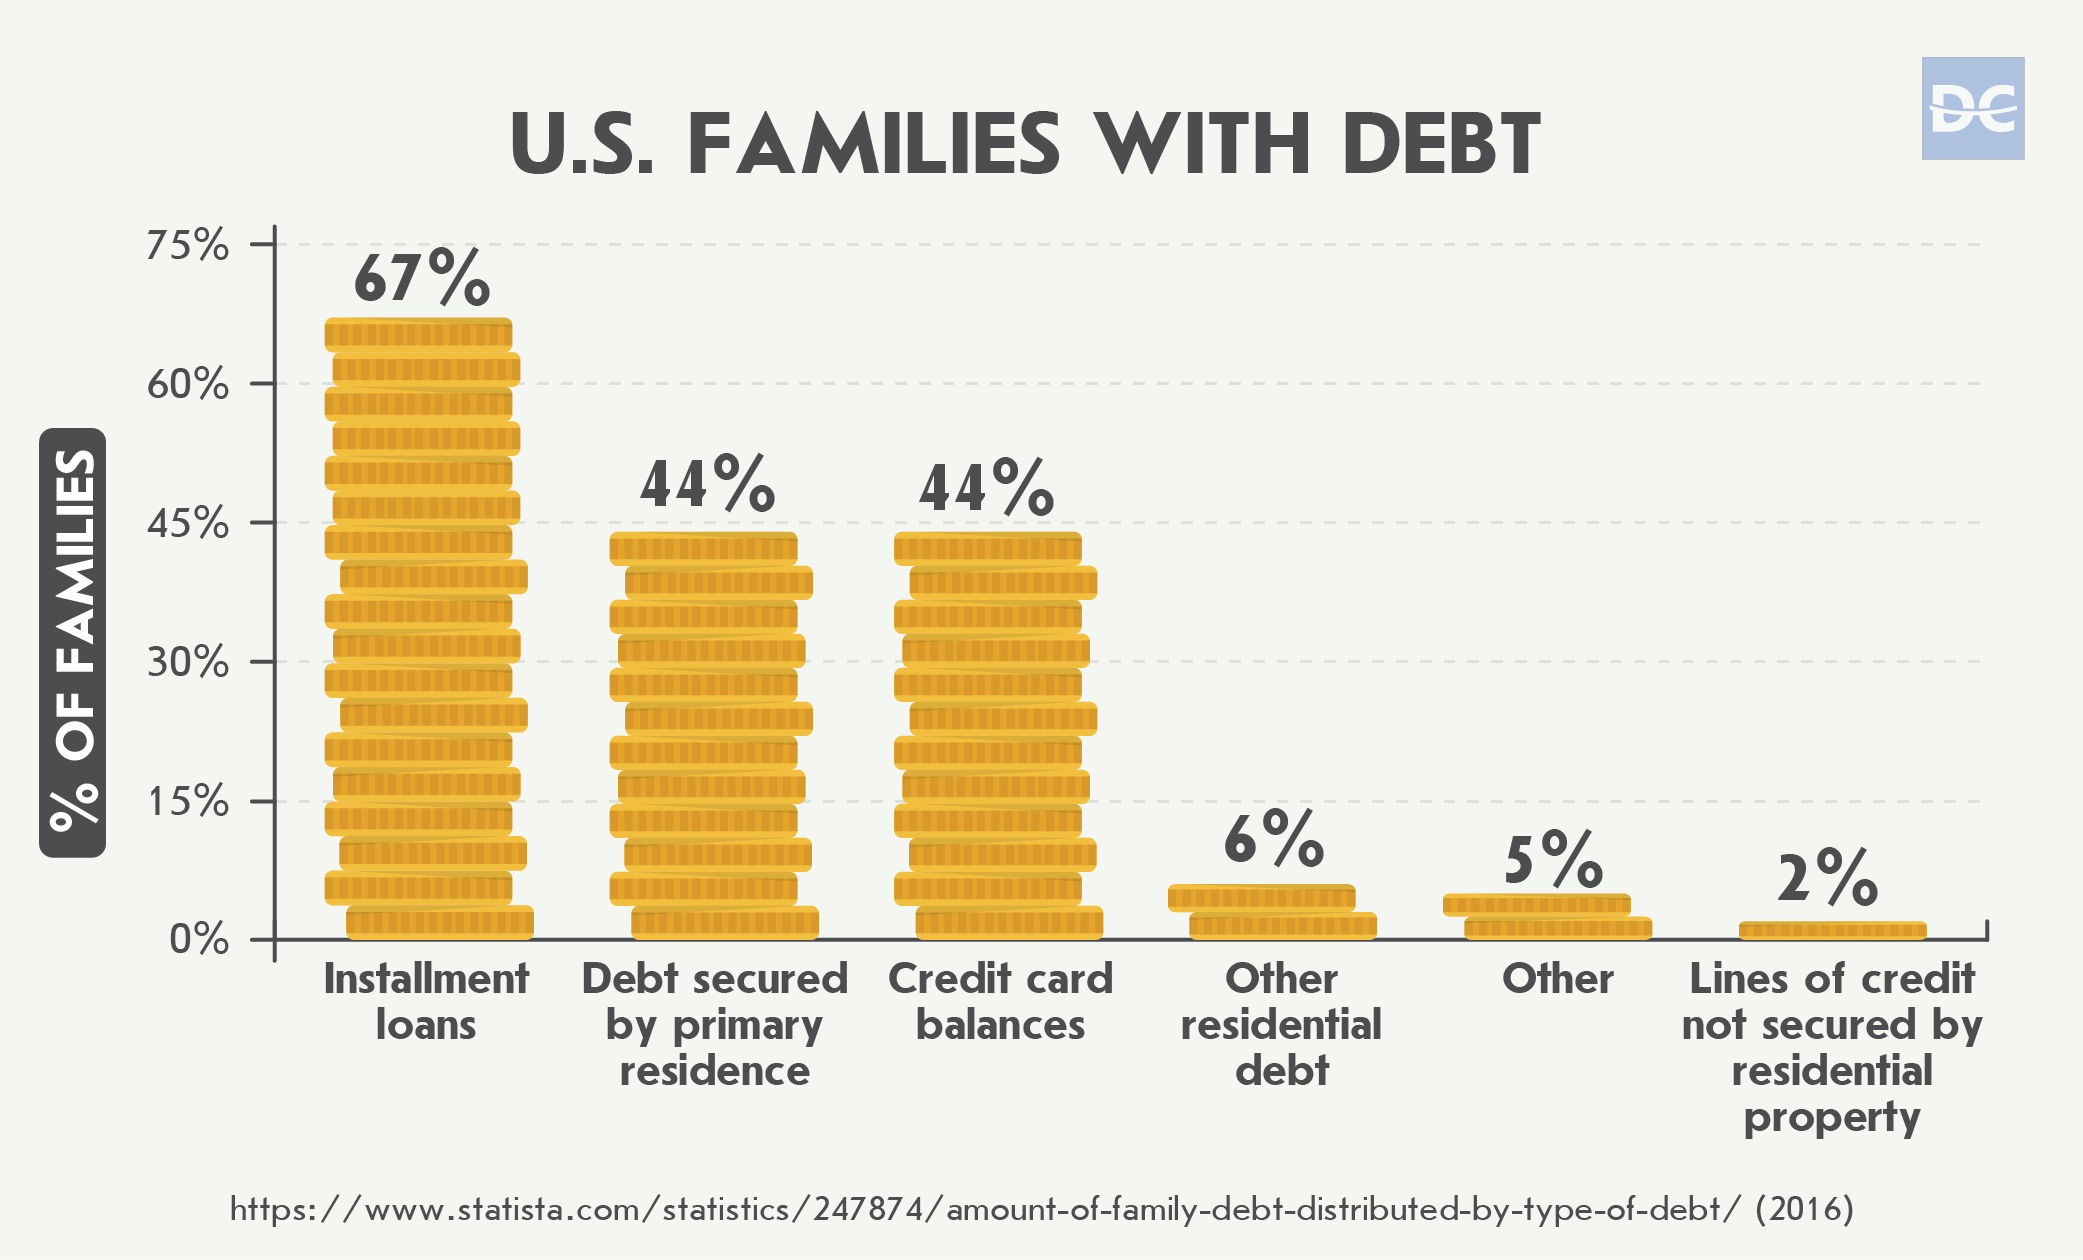 Percentage of U.S. Families With Debt